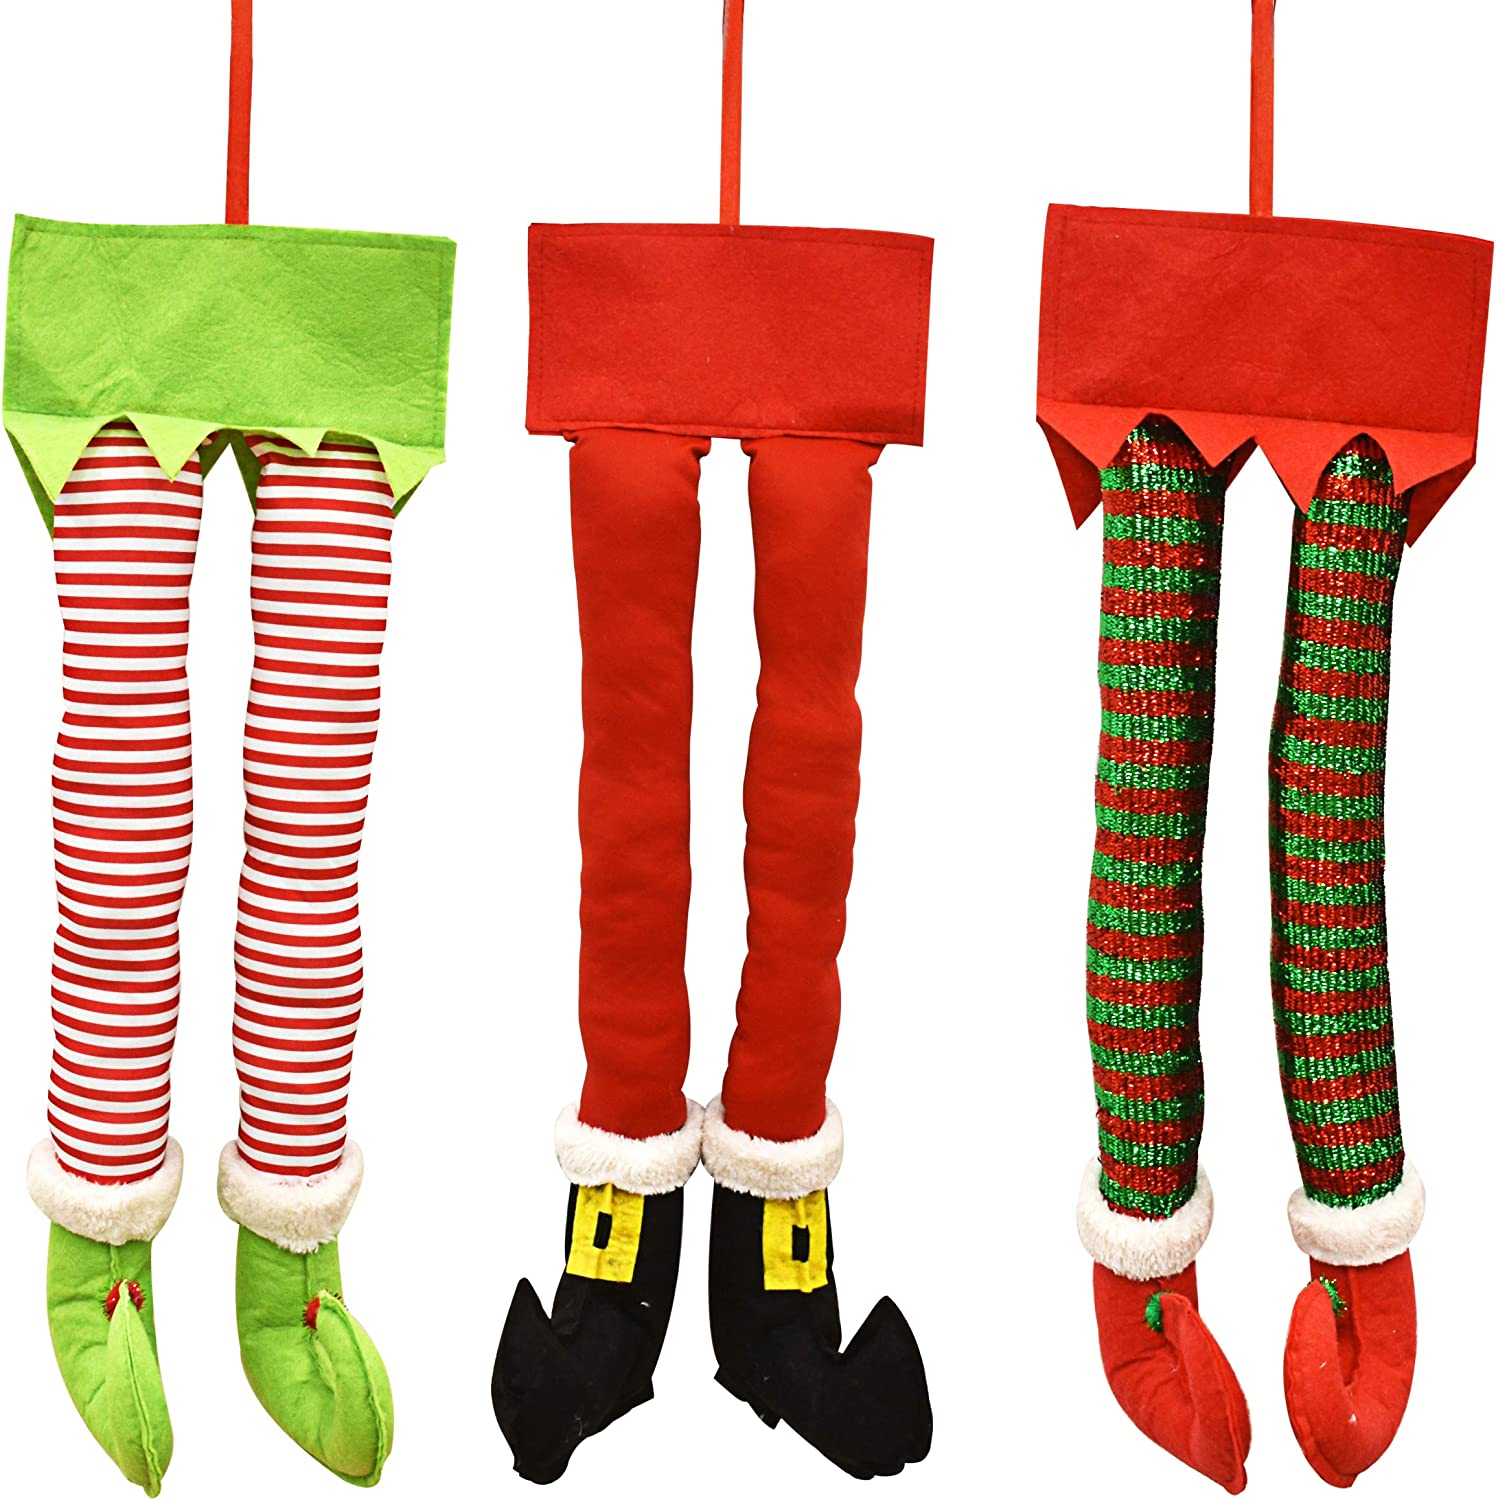 Gift Boutique Christmas Santa and Elf Legs Plush Stuffed Feet with Shoes, Stuck in Christmas Tree Décor Green and White Colors Set of 3 Decorative Ornament Decorations 23 inches long